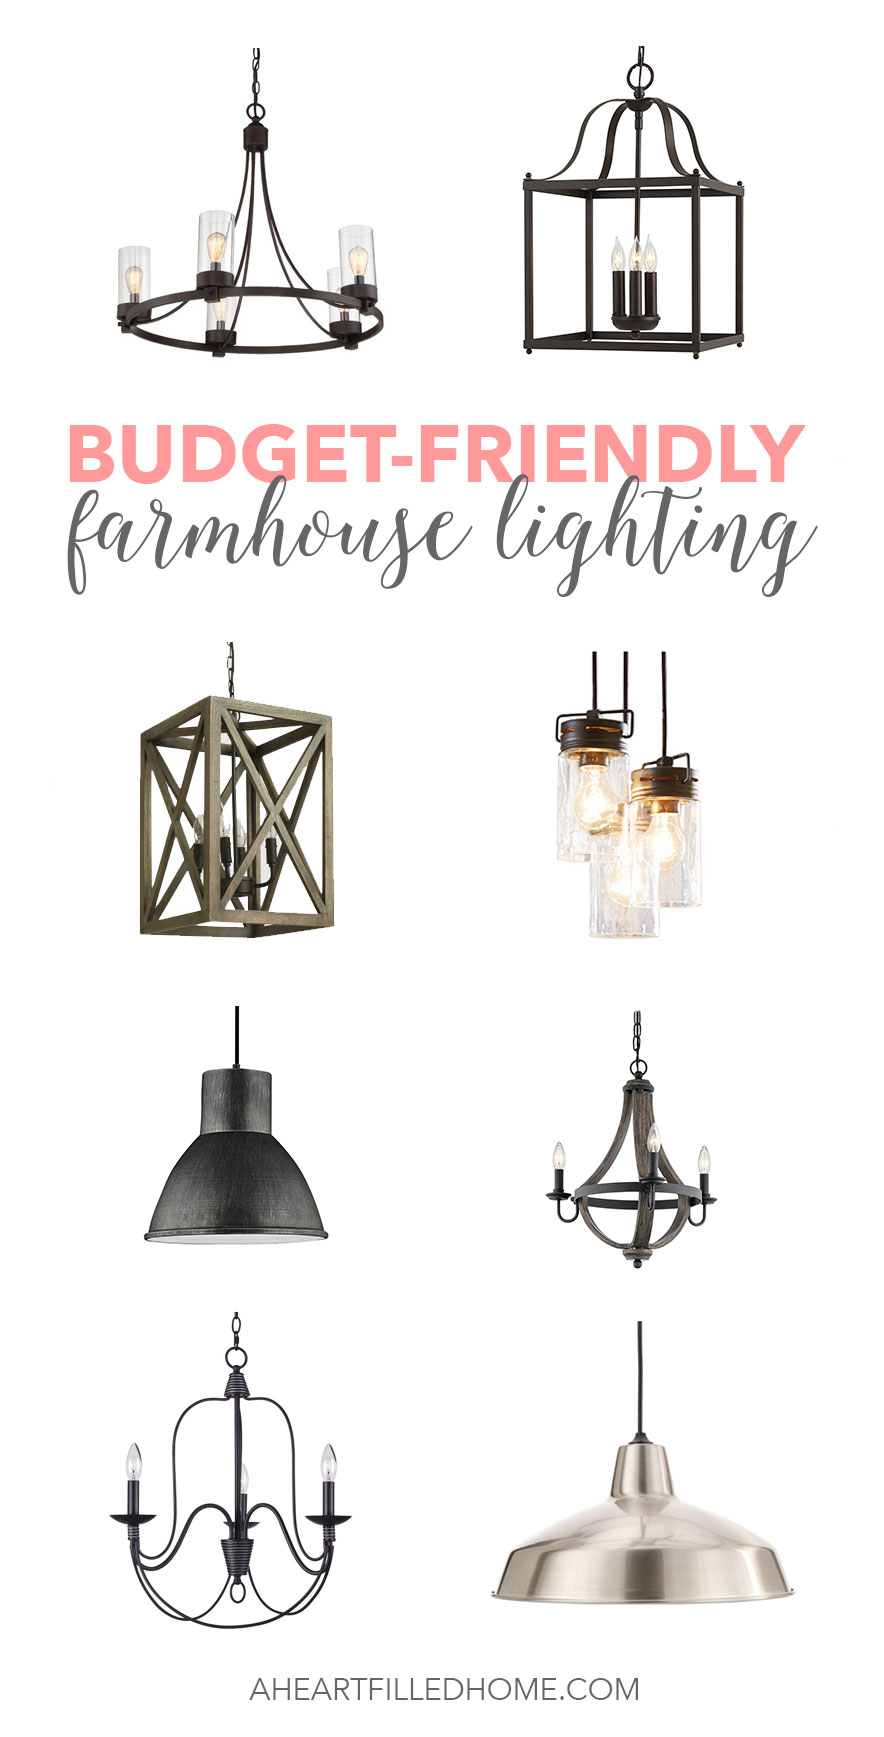 Budget friendly farmhouse lighting